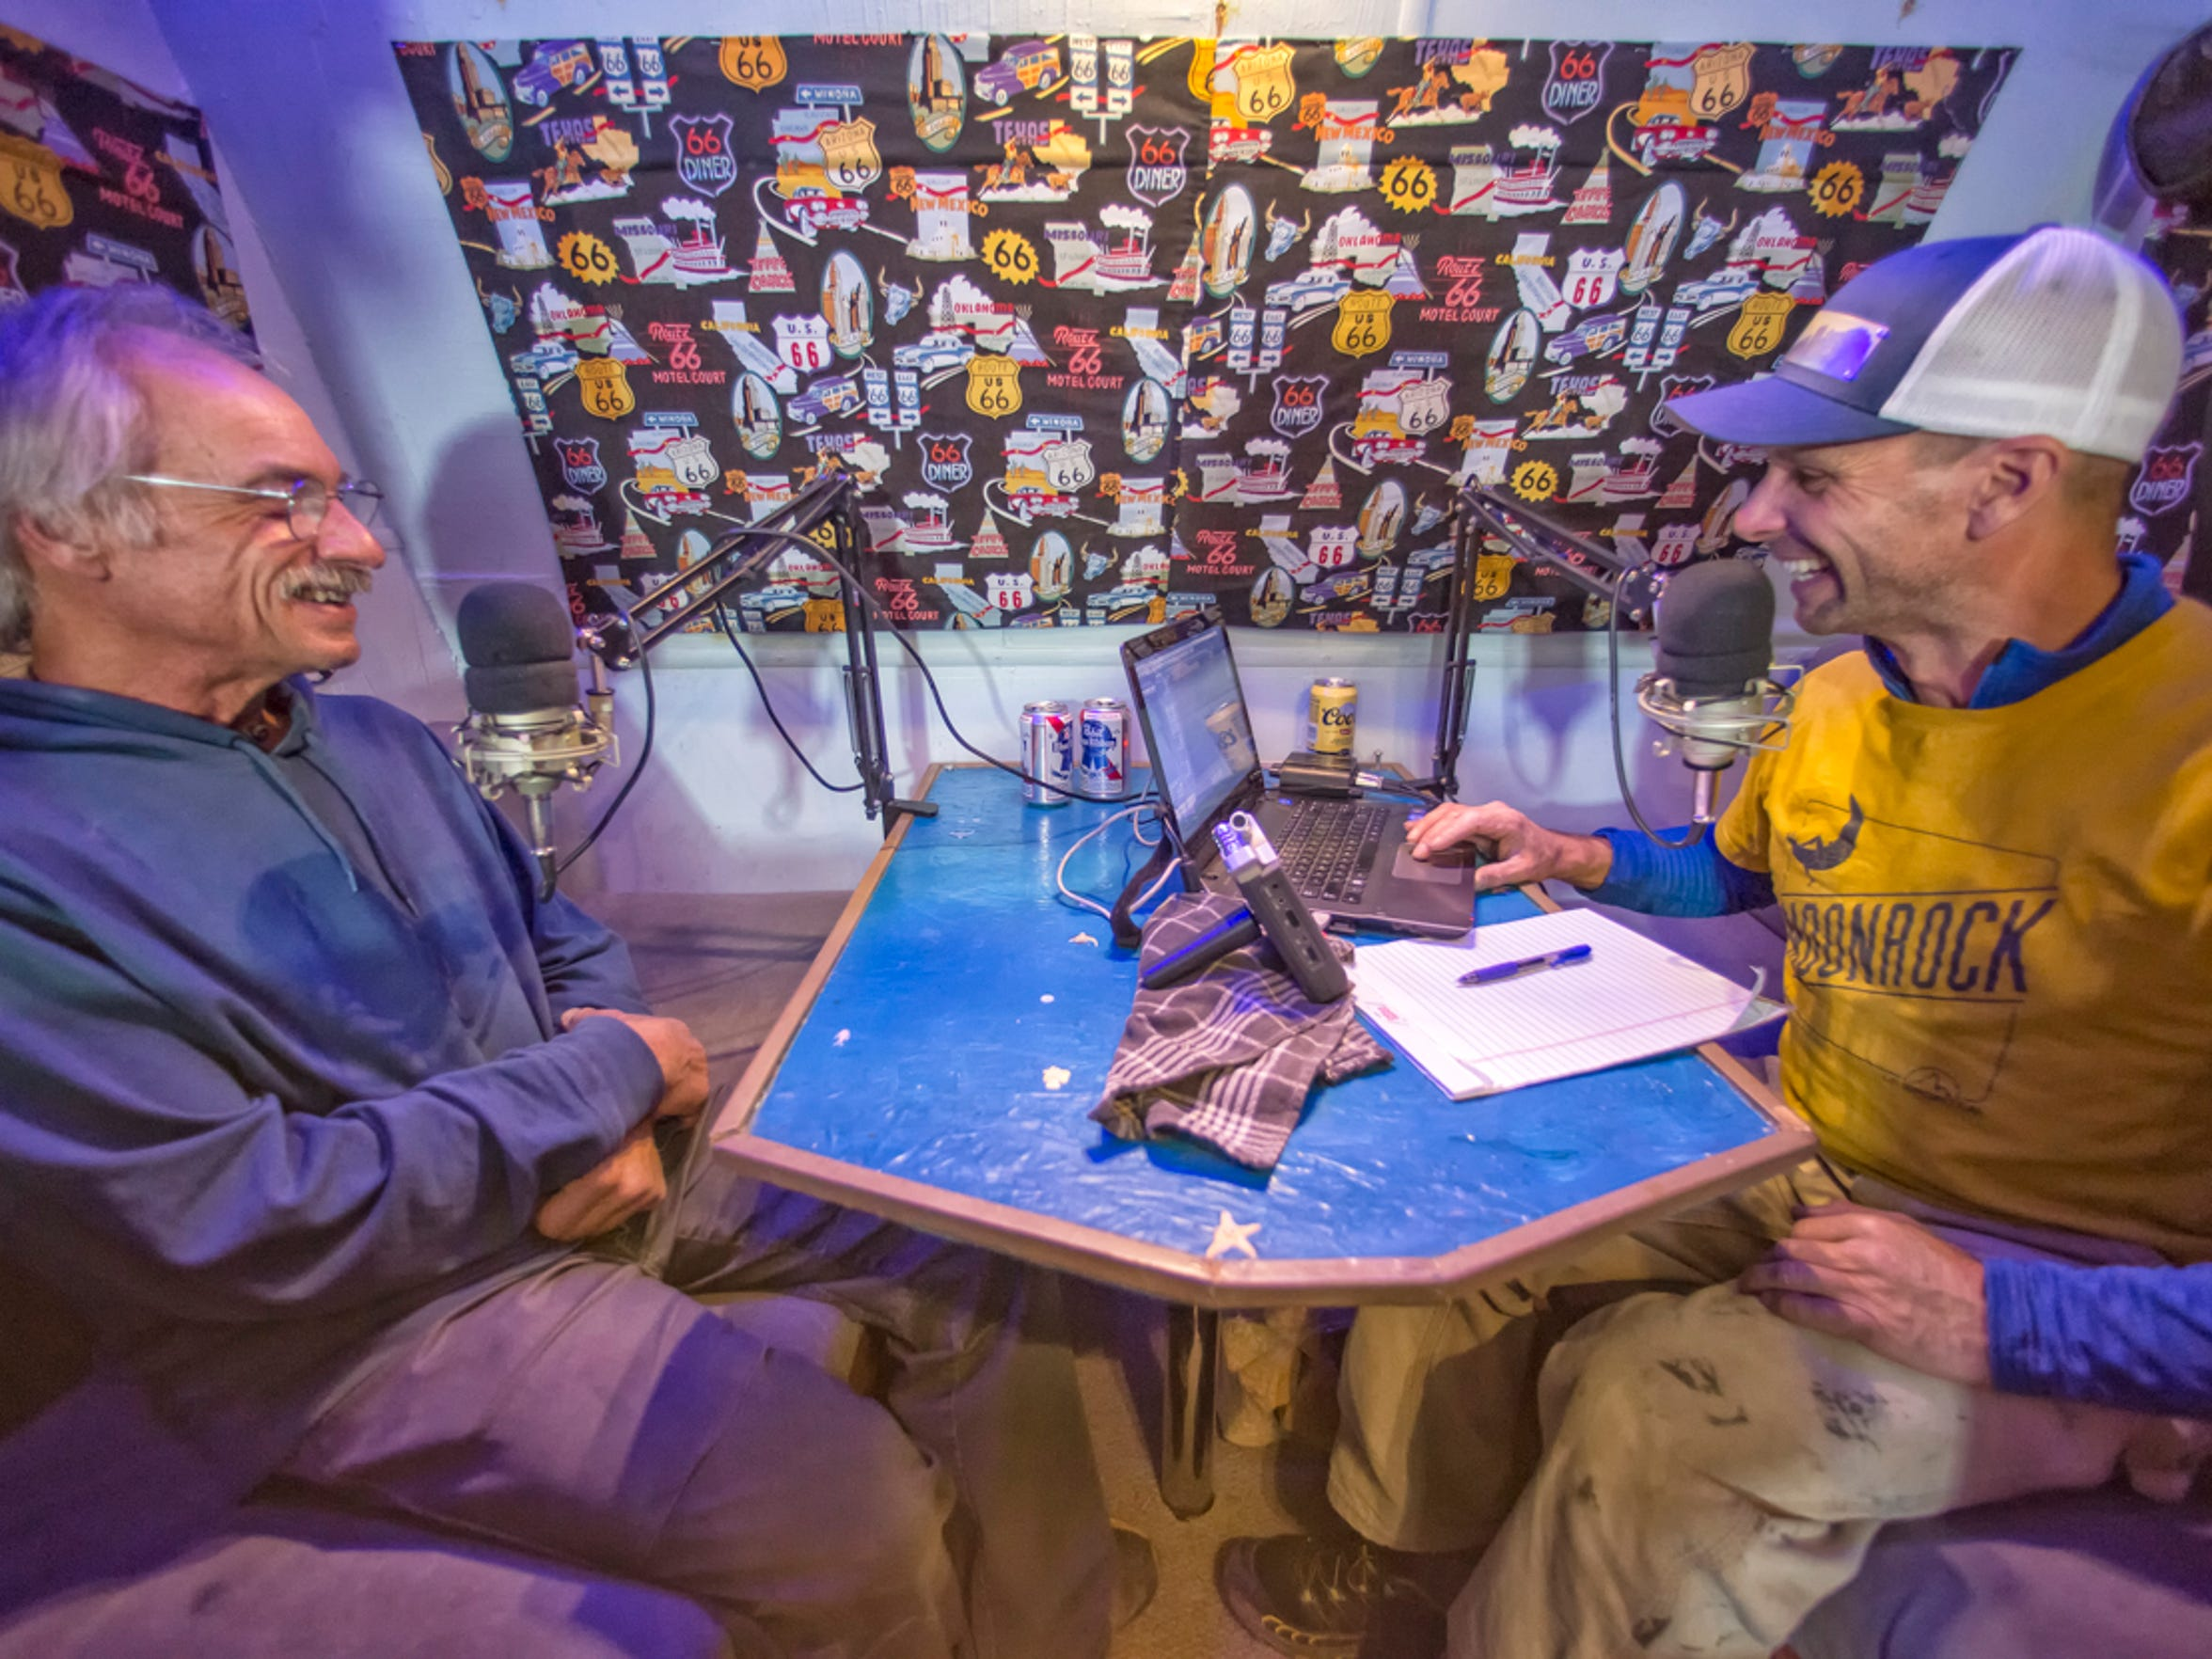 Chris Kalous, host of The Enormocast podcast, interviewing climber Jay Smith in the mobile studio.